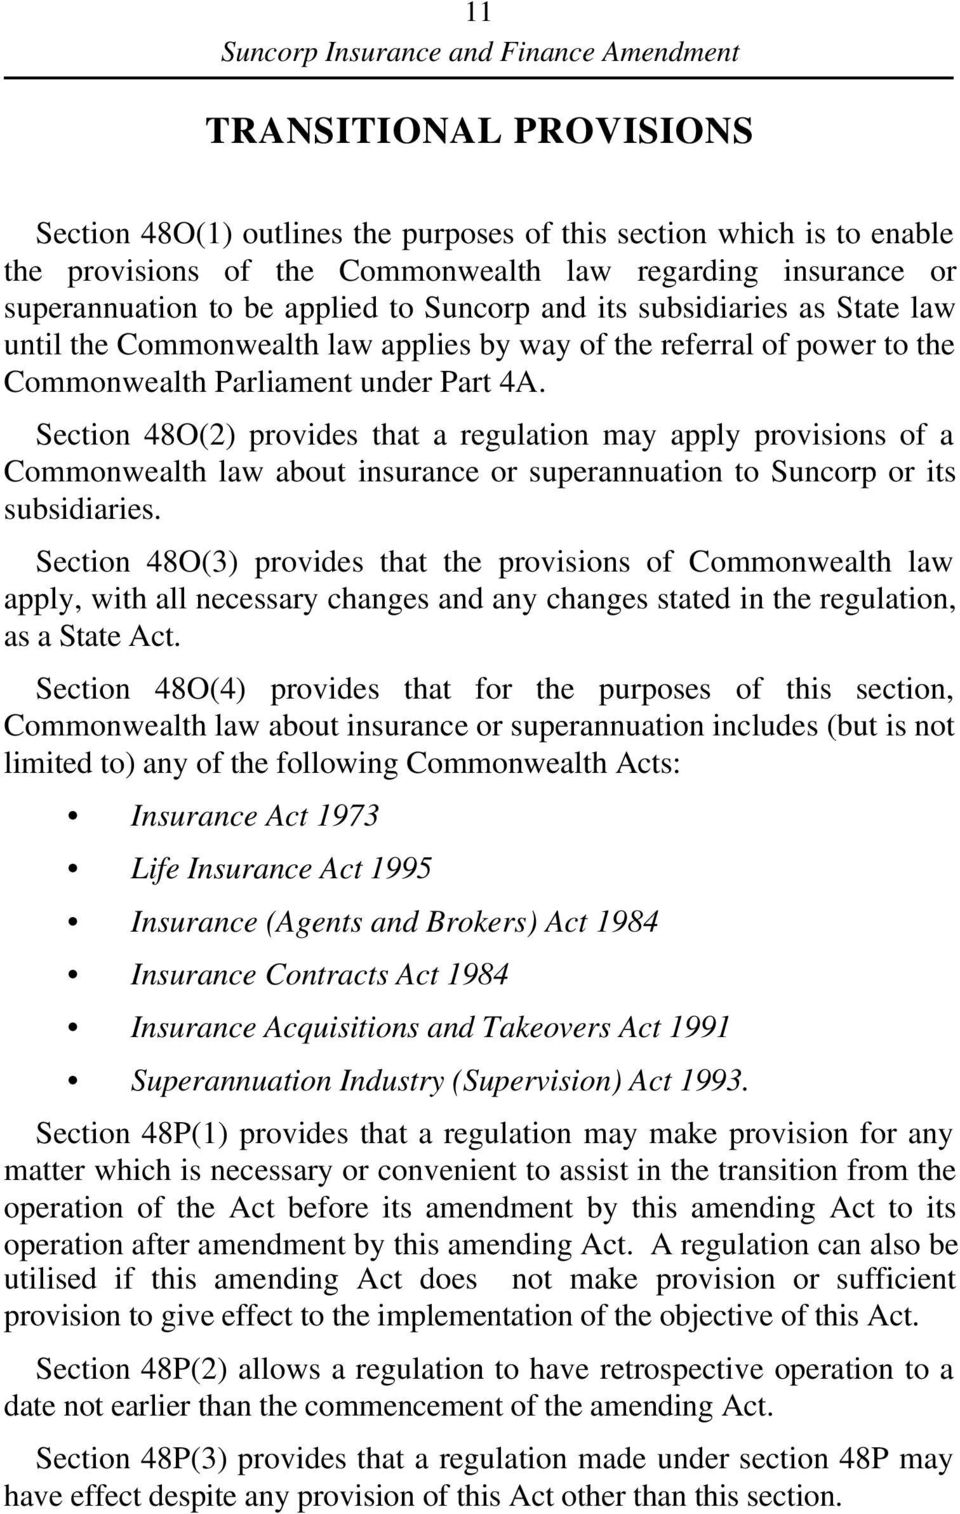 Section 48O(2) provides that a regulation may apply provisions of a Commonwealth law about insurance or superannuation to Suncorp or its subsidiaries.